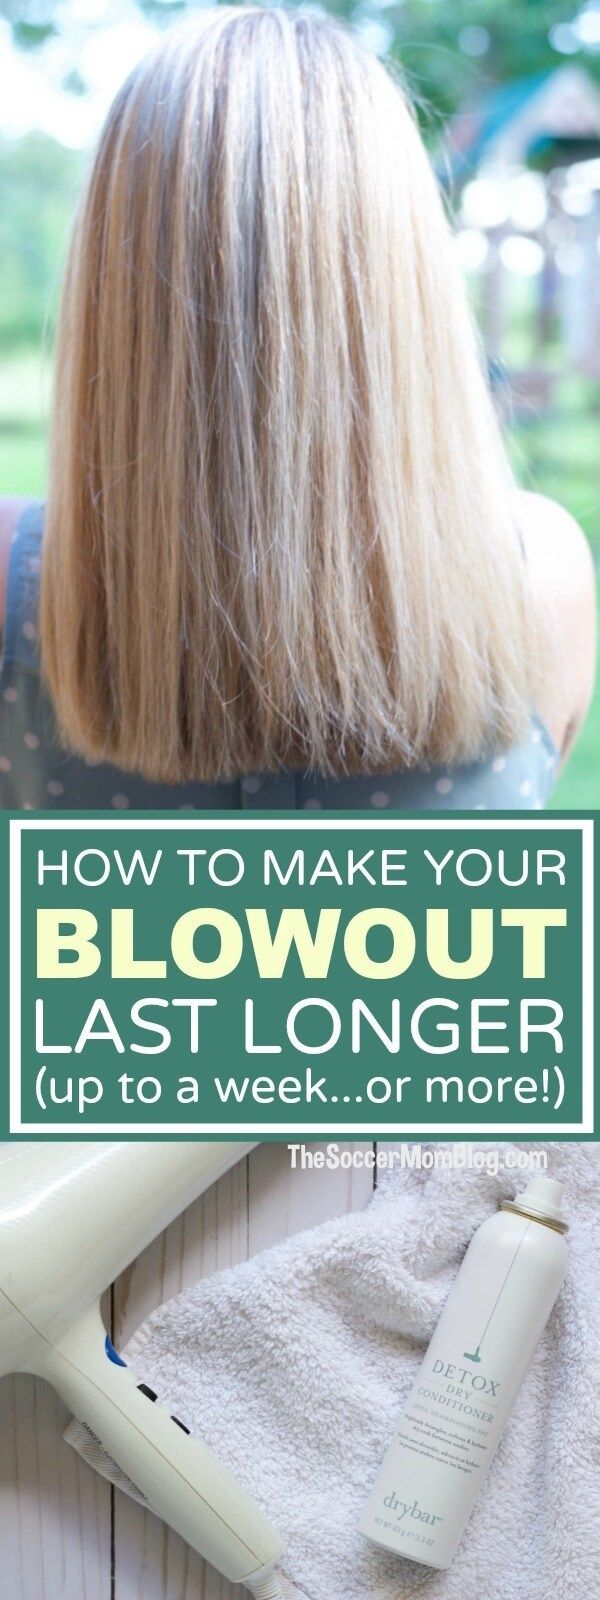 With these 6 hair hacks you'll be able to go longer between washes, keep your hair healthier, make your blowout last longer, and be styled in seconds! #ad #SoWorthIt #SephoraInJCP @jcpenney @sephora